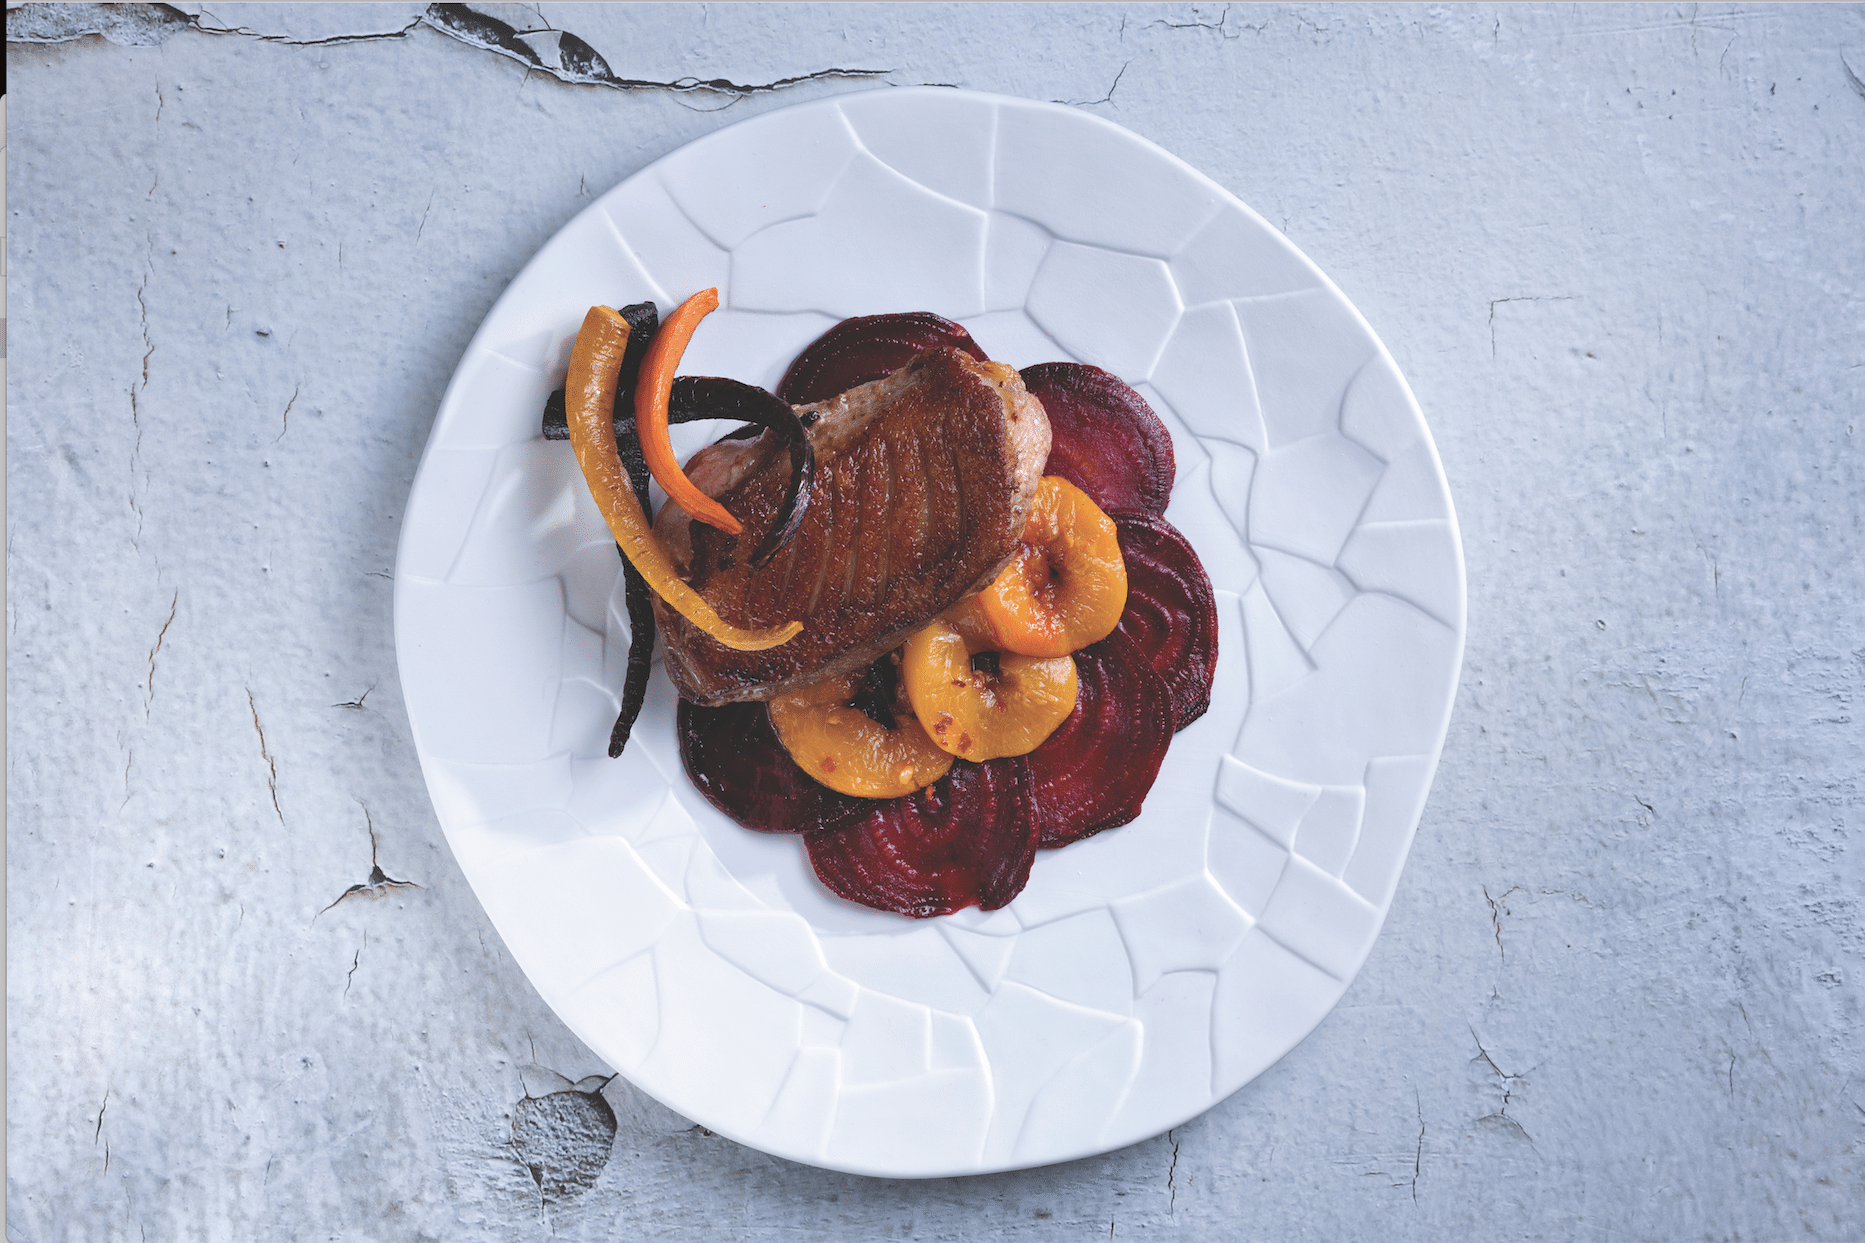 Carob Glazed Duck Breast with Baked Roots and Peaches